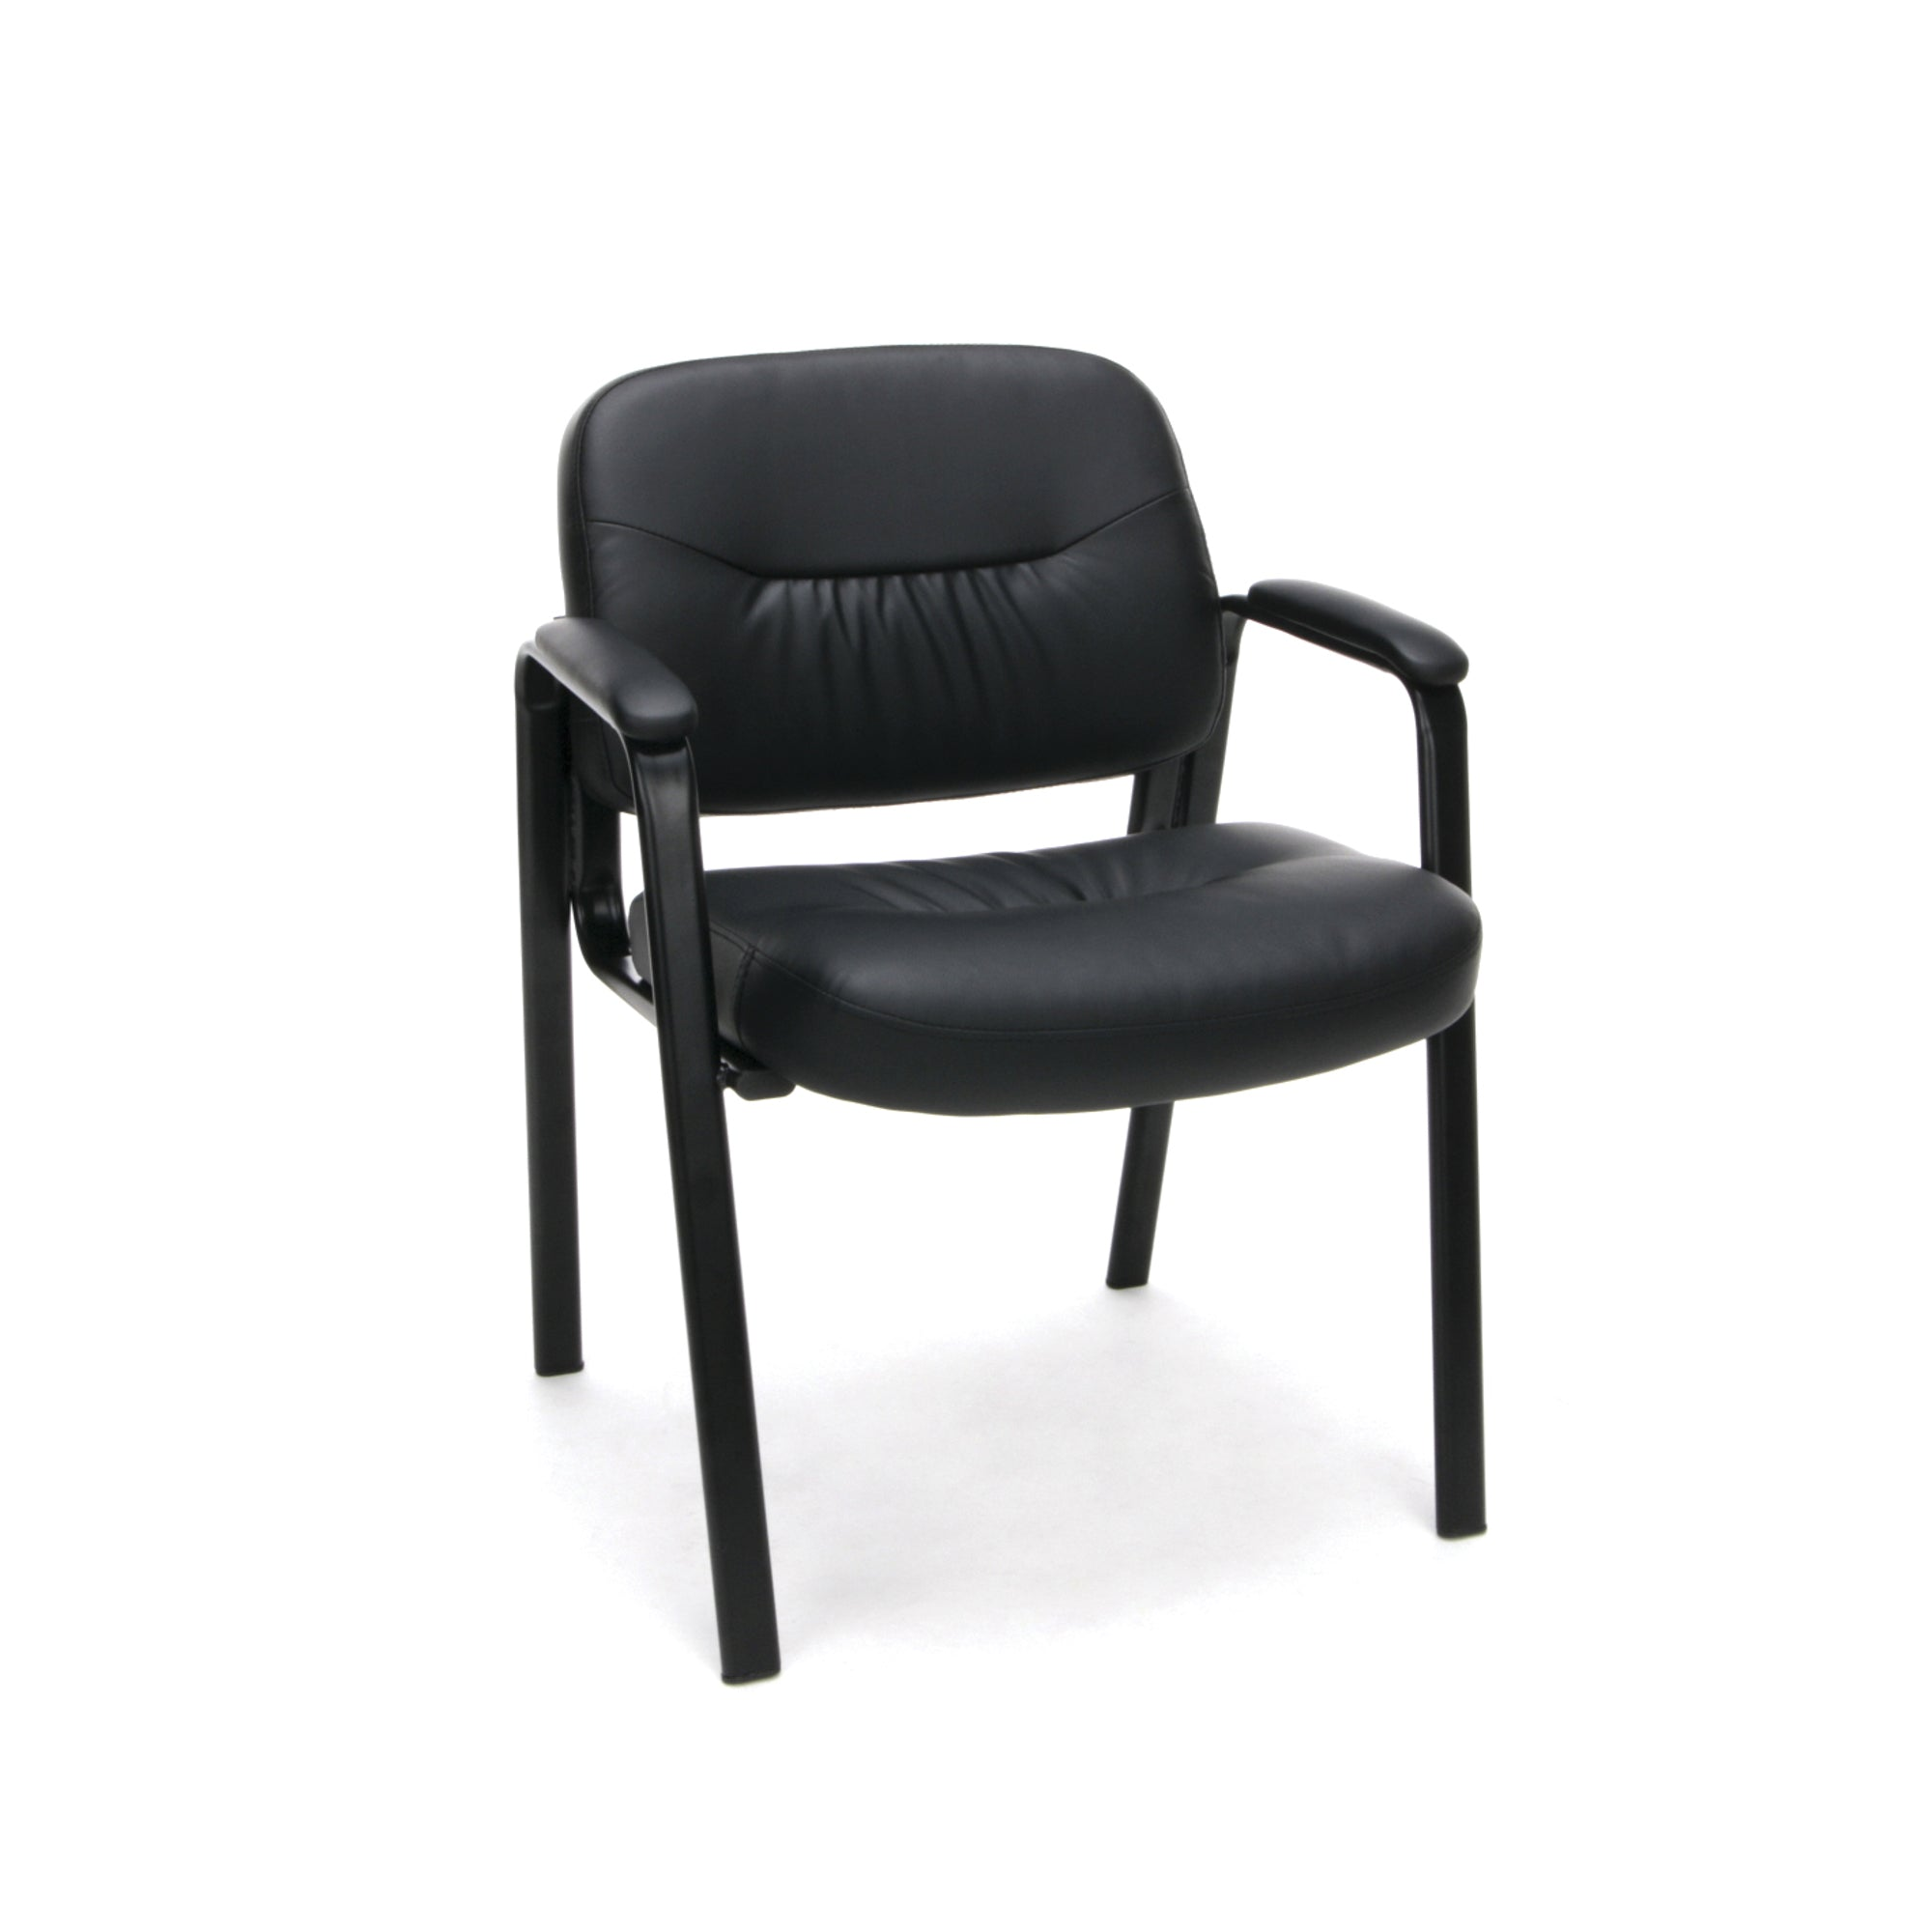 ESS-9010 Essentials by OFM Leather Executive Side Chair with Legs